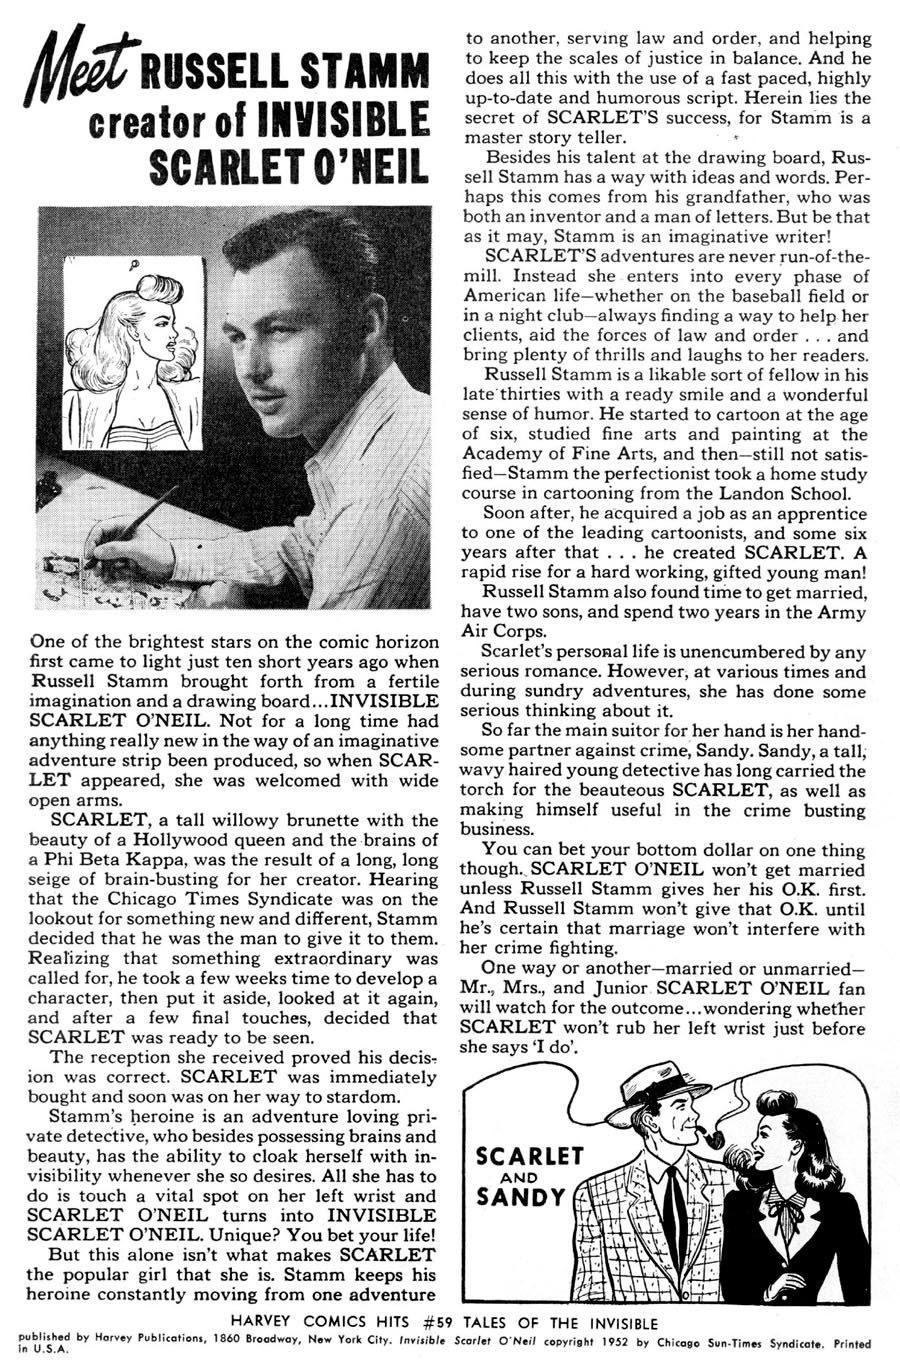 Harvey Comic Hits #59 - Meet Russell Stamm (1952)